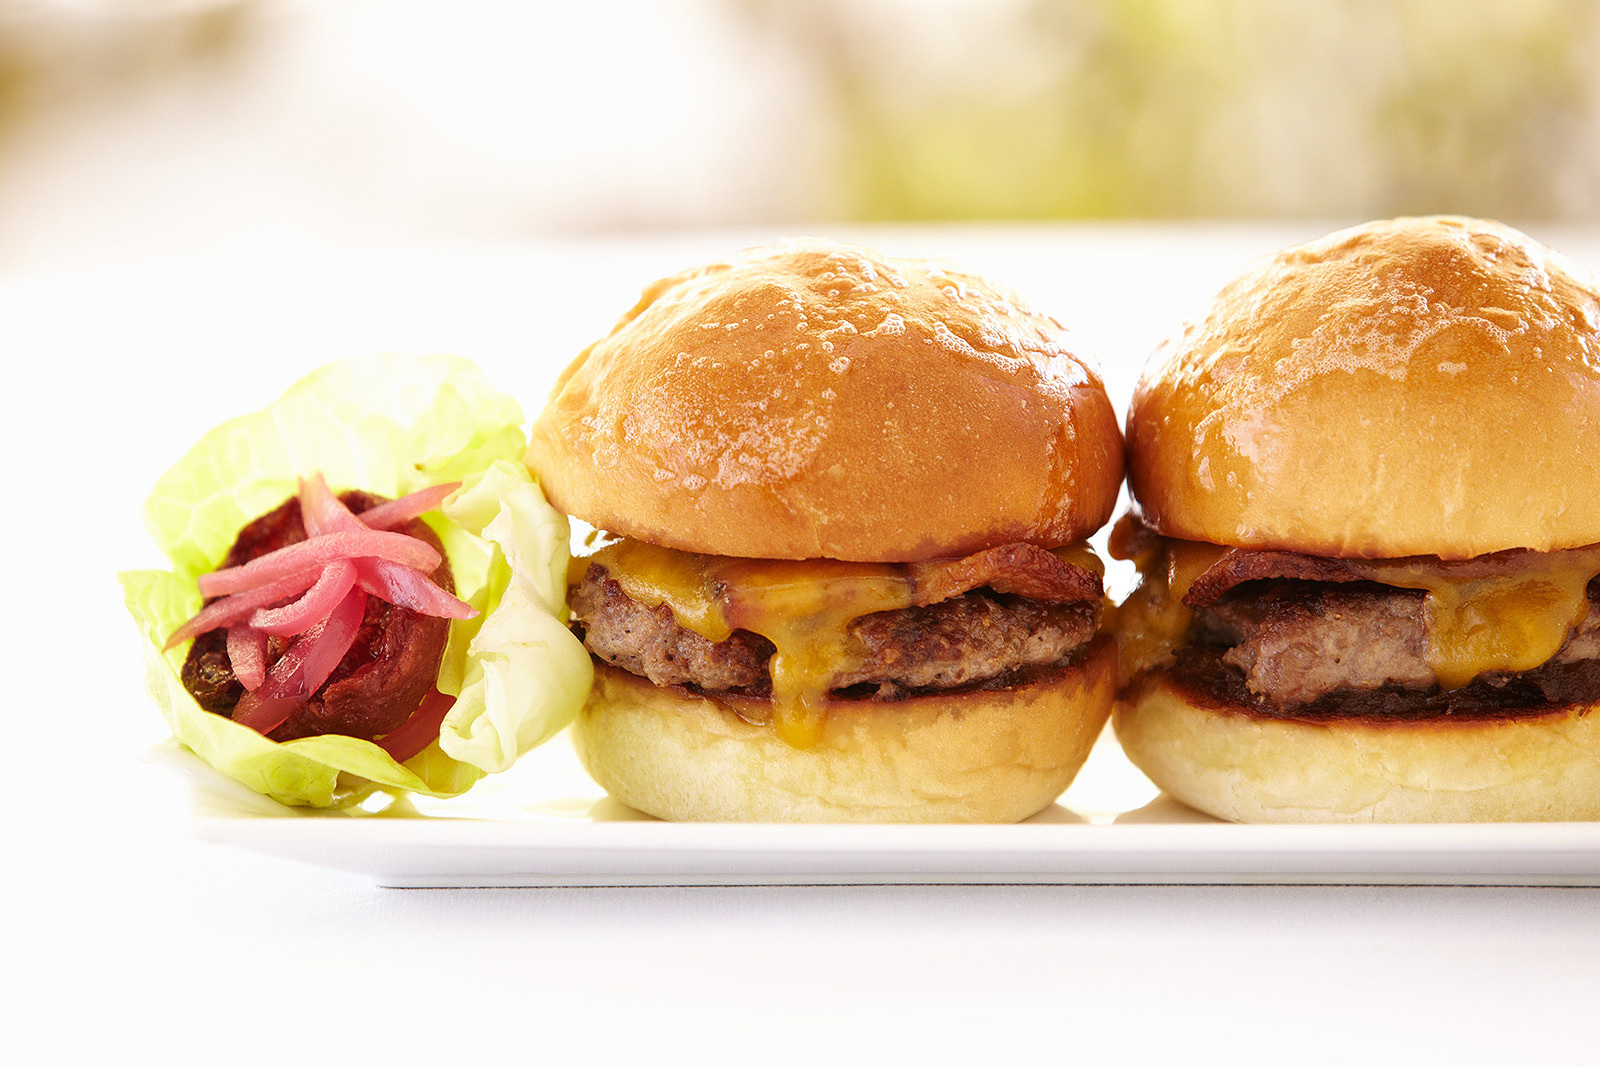 Sliders at Solbar restaurant, Napa, CA  | Trinette+Chris Photographers